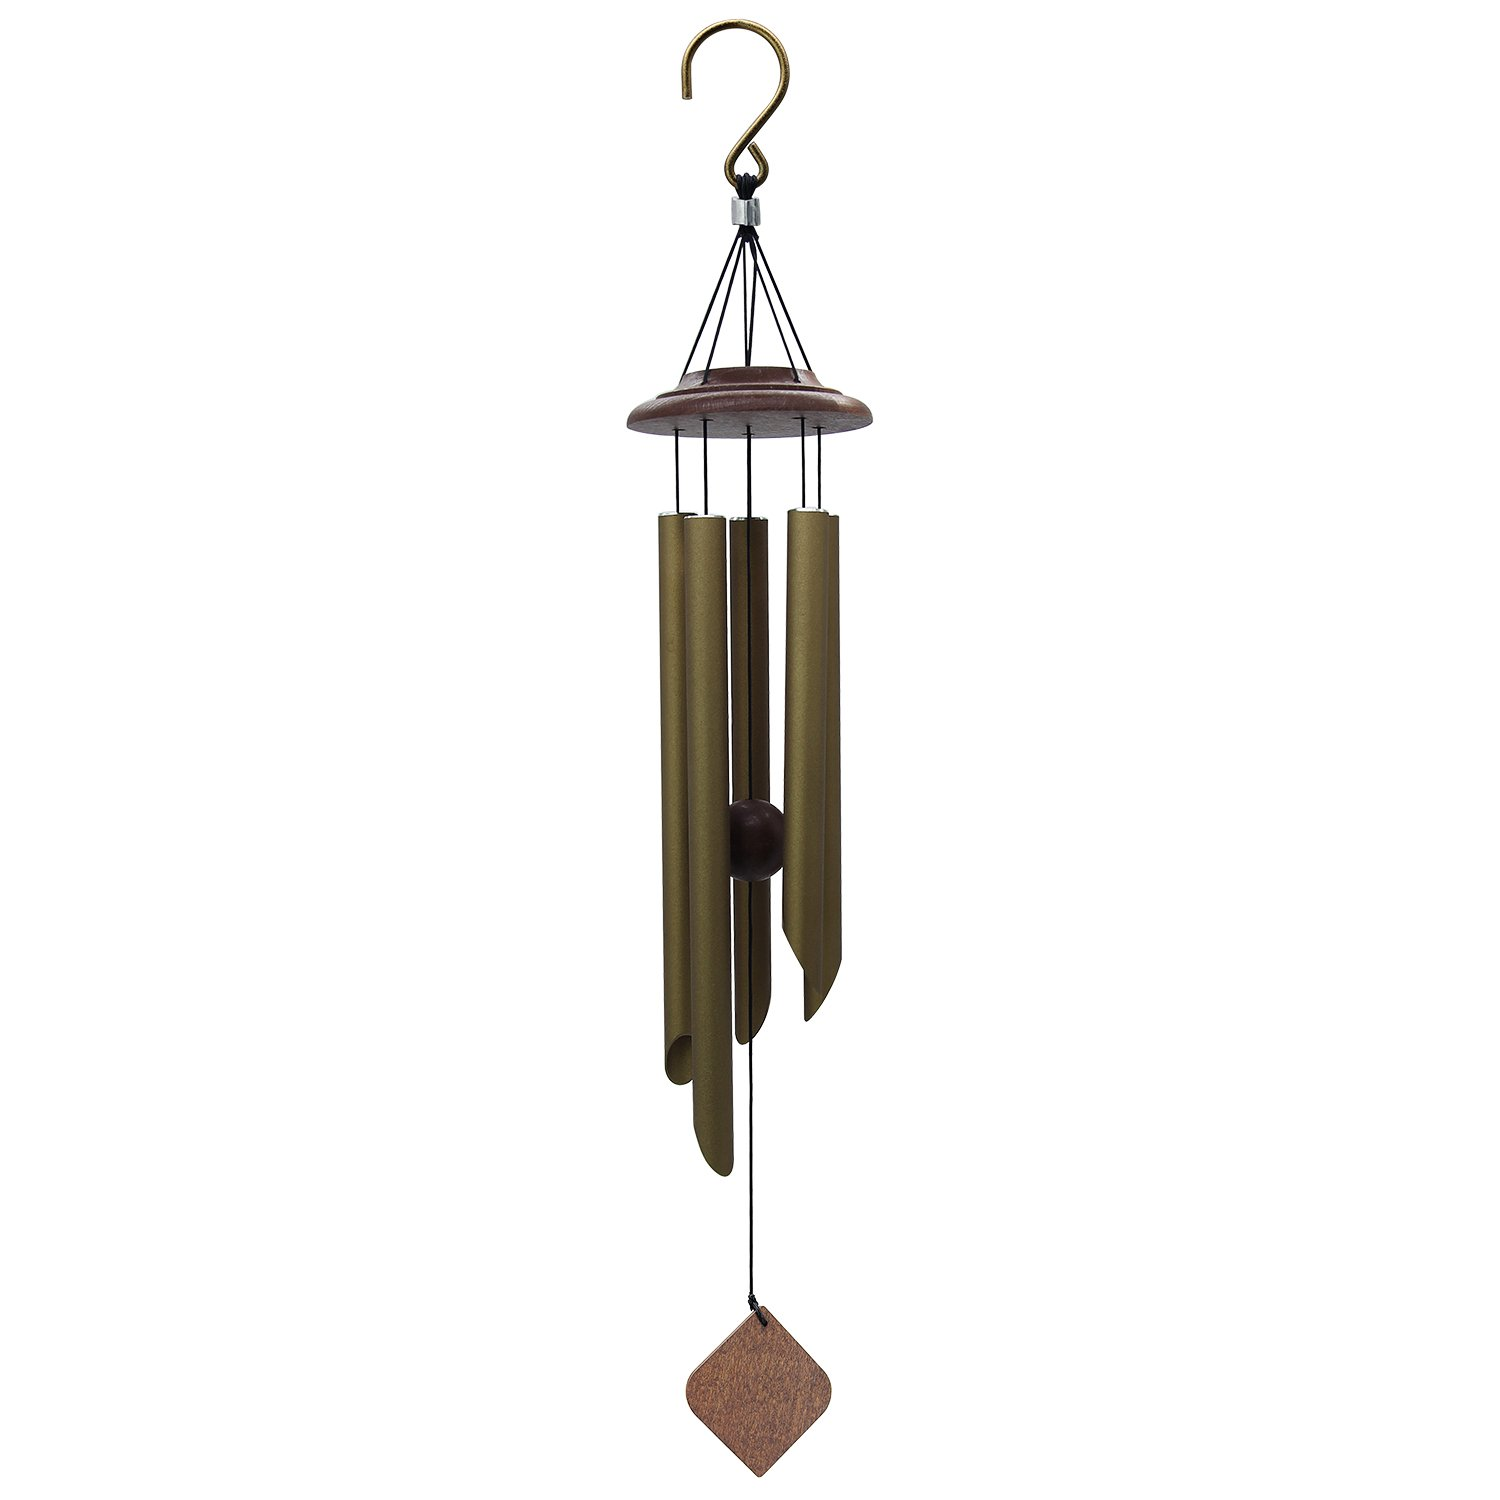 Wind Chimes Outdoor Deep Tone, Memorial Wind Chimes with Amazing Grace Sound, Sympathy Chimes with 5 Metal Tubes, Bronze Wind Chime for Garden, Balcony, Patio and Home Decor, Tuned Wind Chimes (26'')